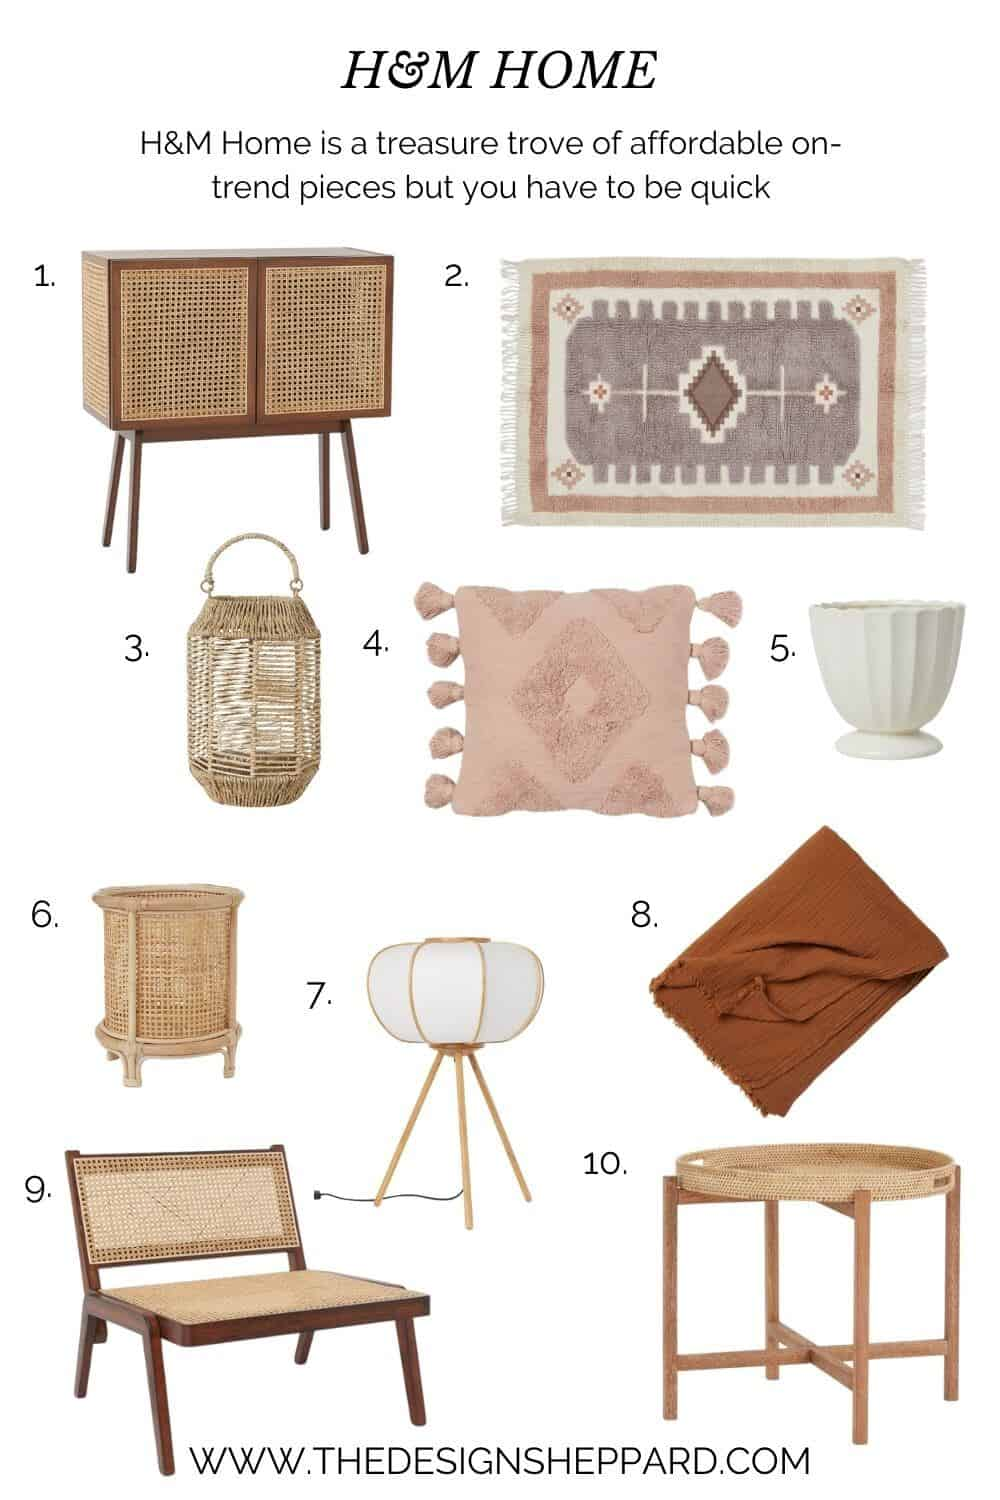 10 on-trend affordable products from H&M Home